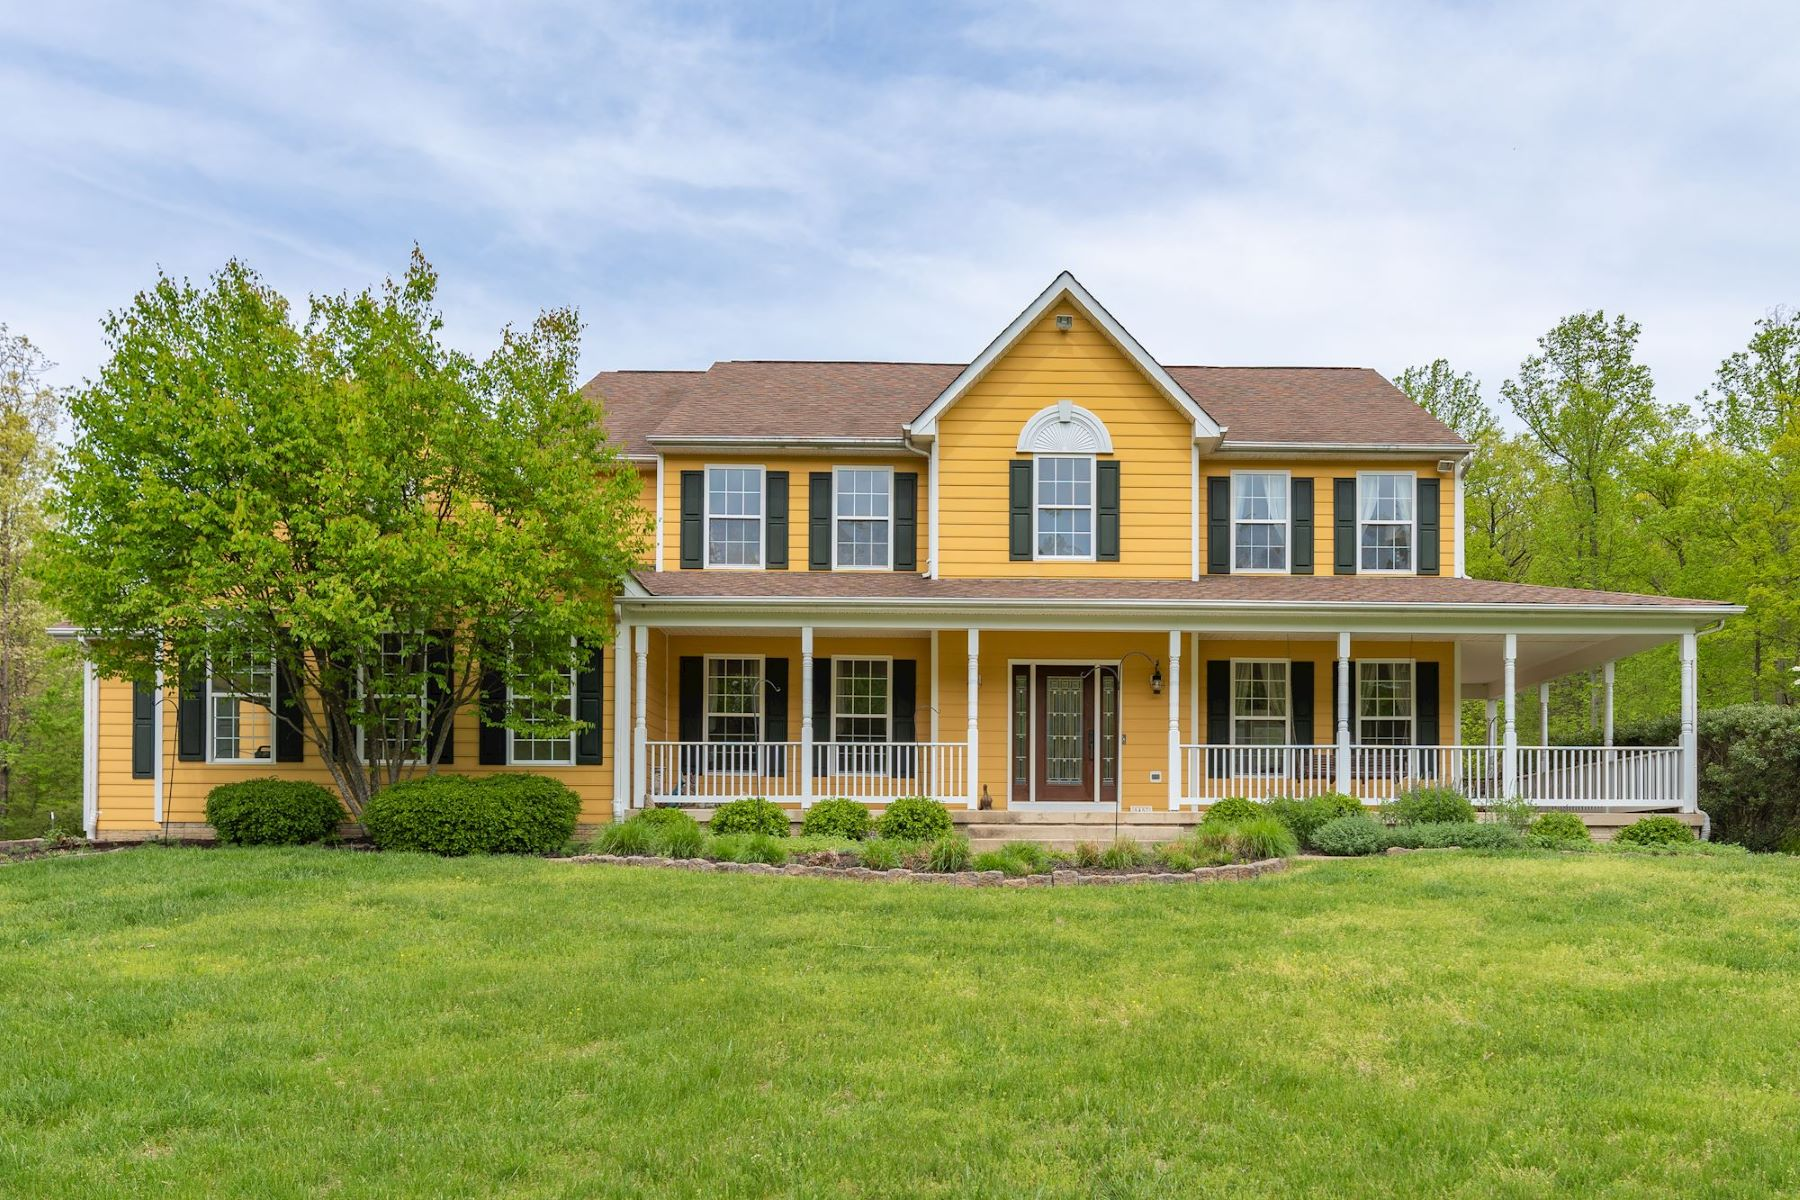 Single Family Homes for Sale at Greenstone Hideaway 5457 NSEW Greenstone Lane Marshall, Virginia 20115 United States